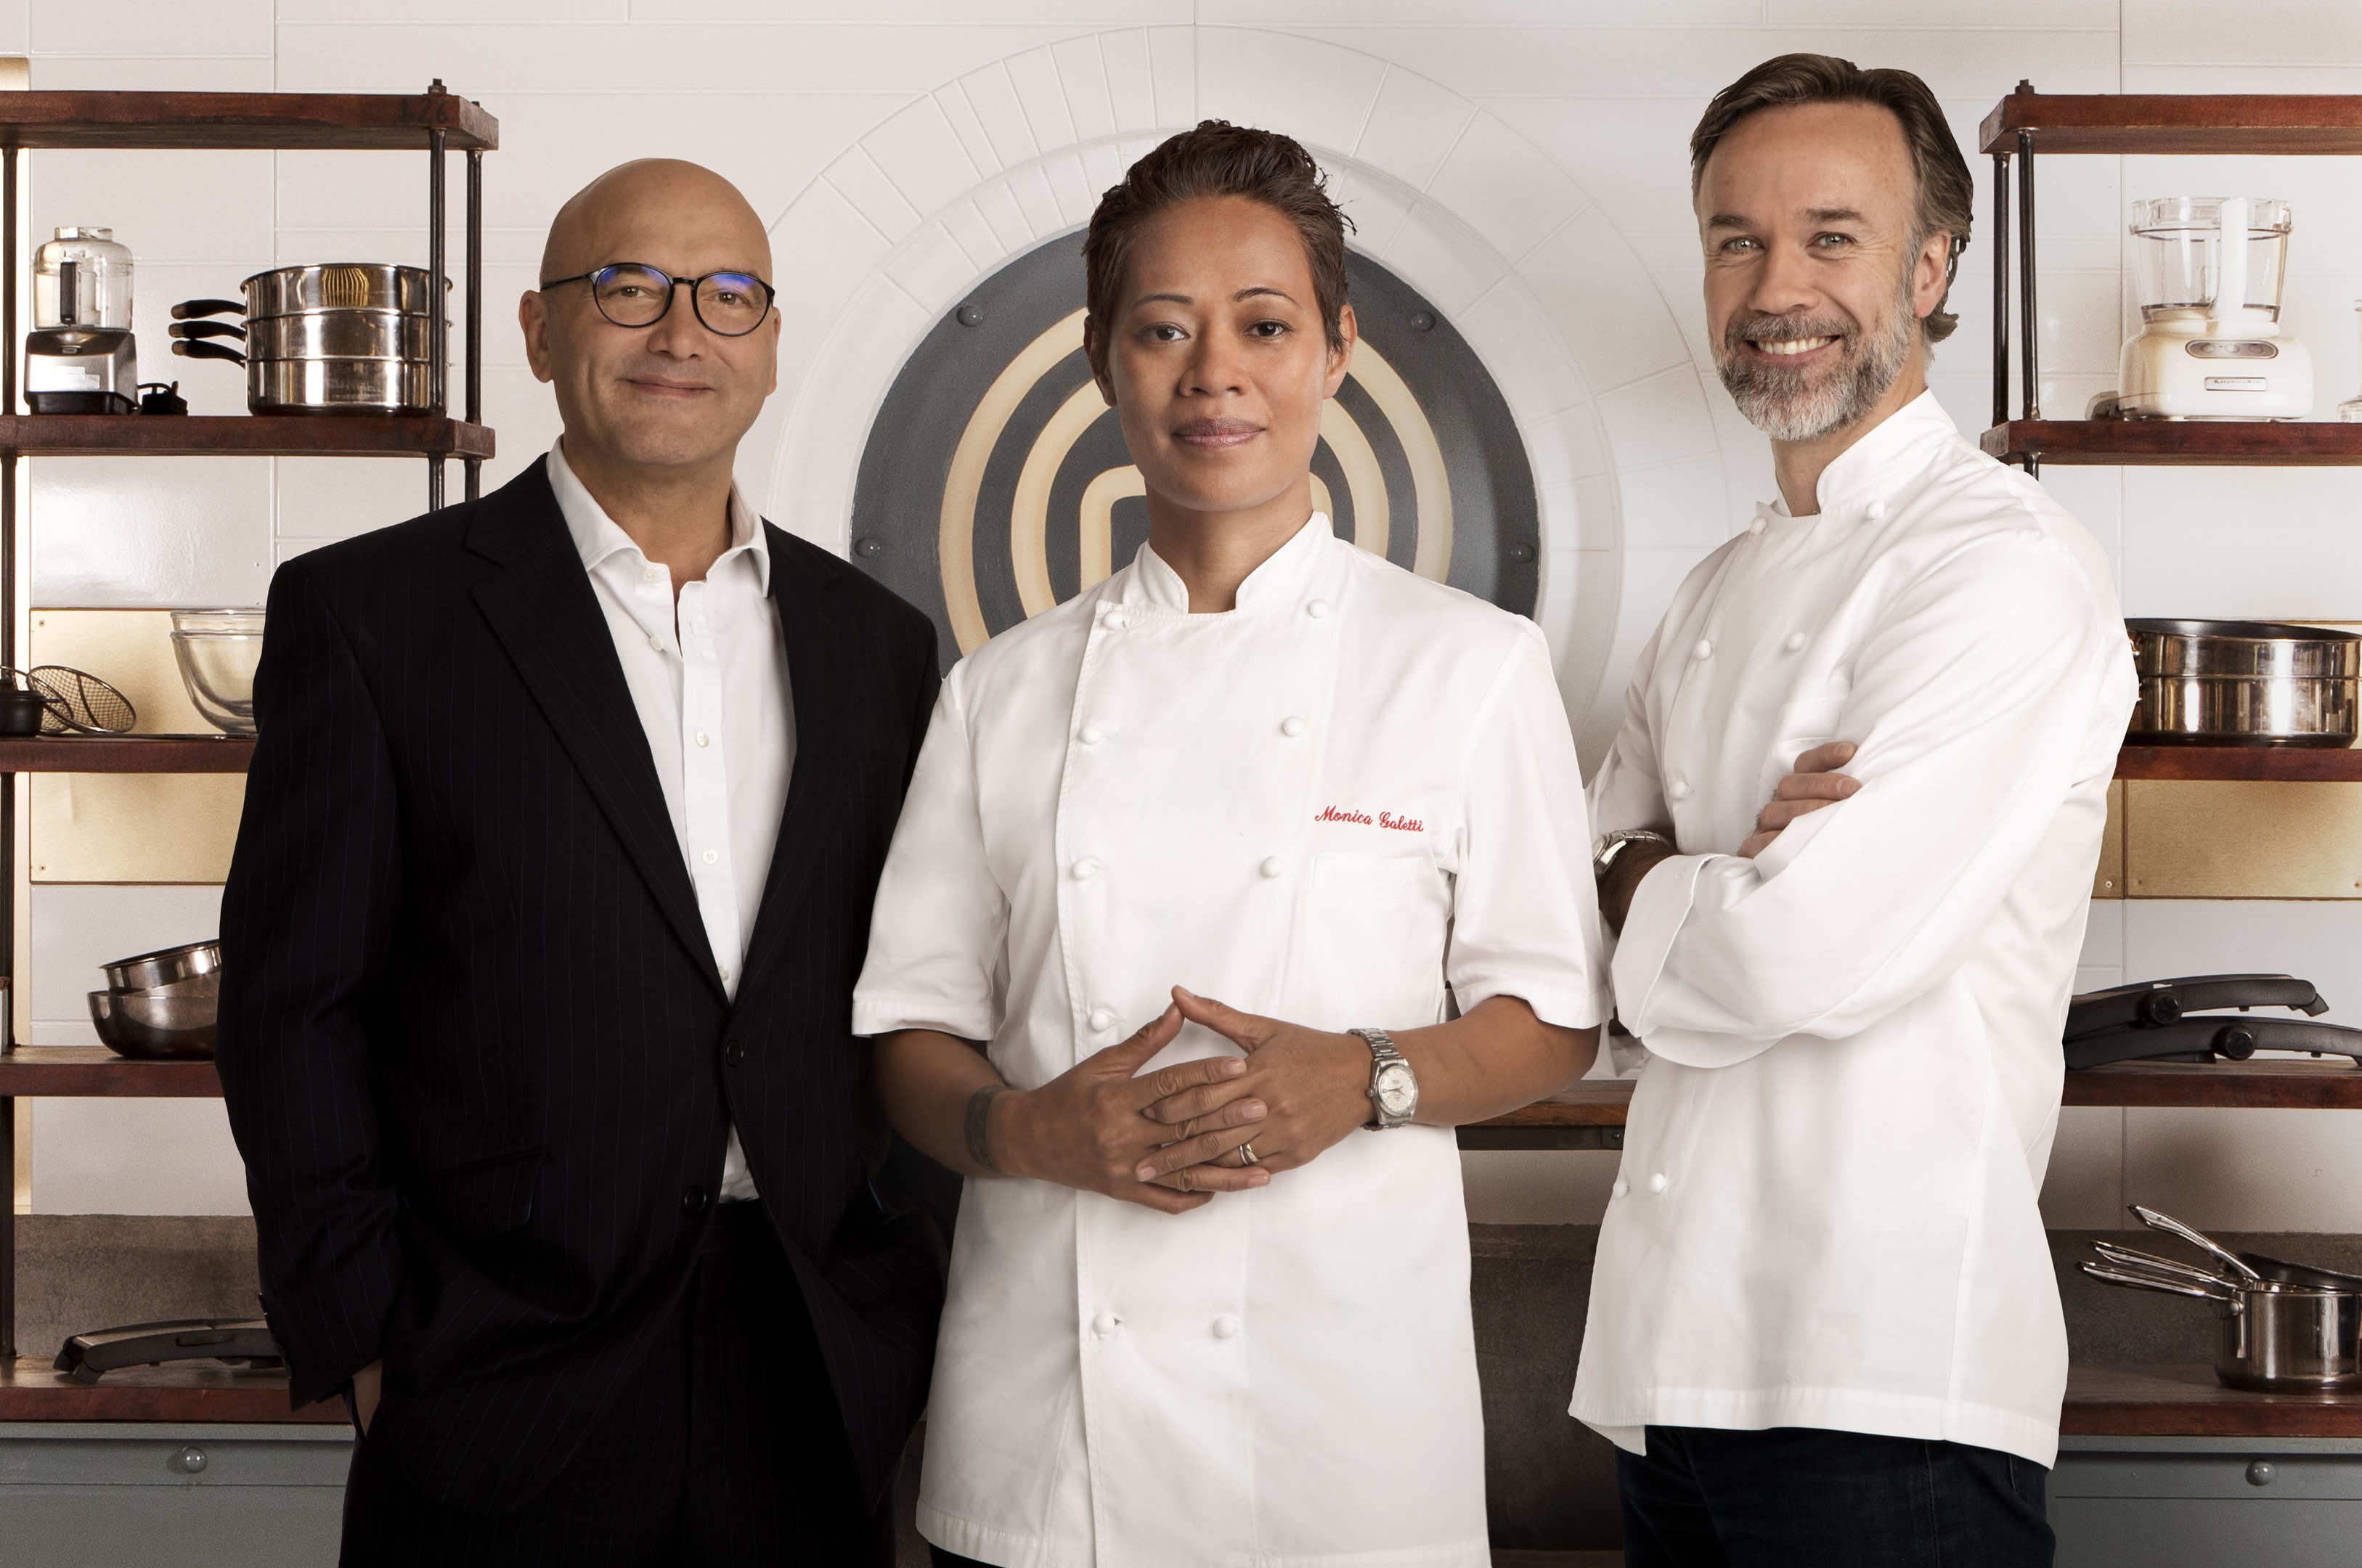 MasterChef judges